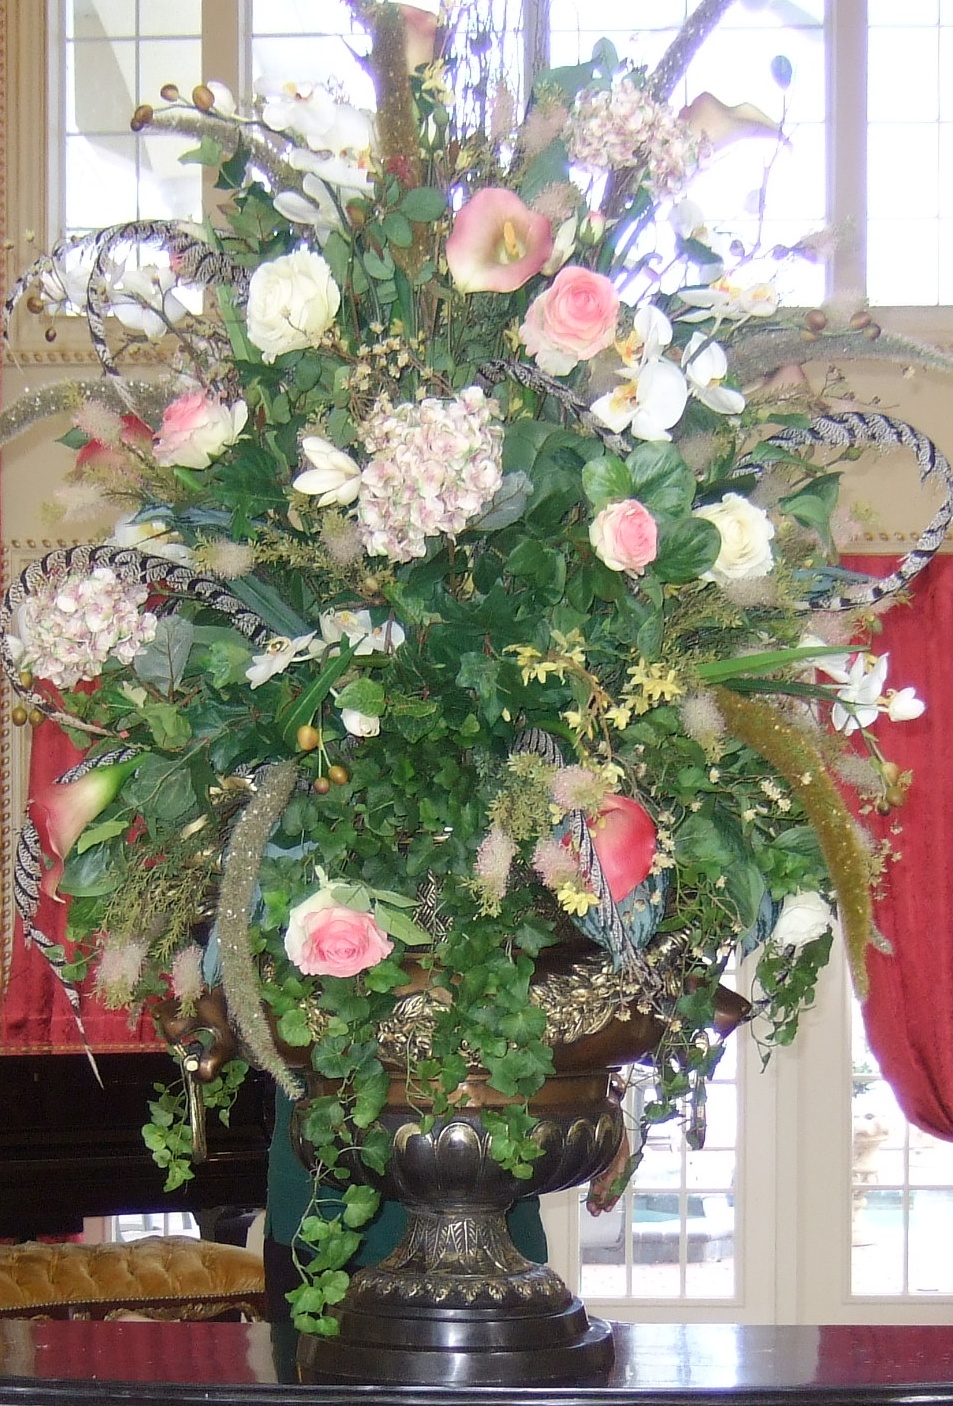 Ana silk flowers images beautiful and luxury huge silk pink silk flowers arrangements mightylinksfo